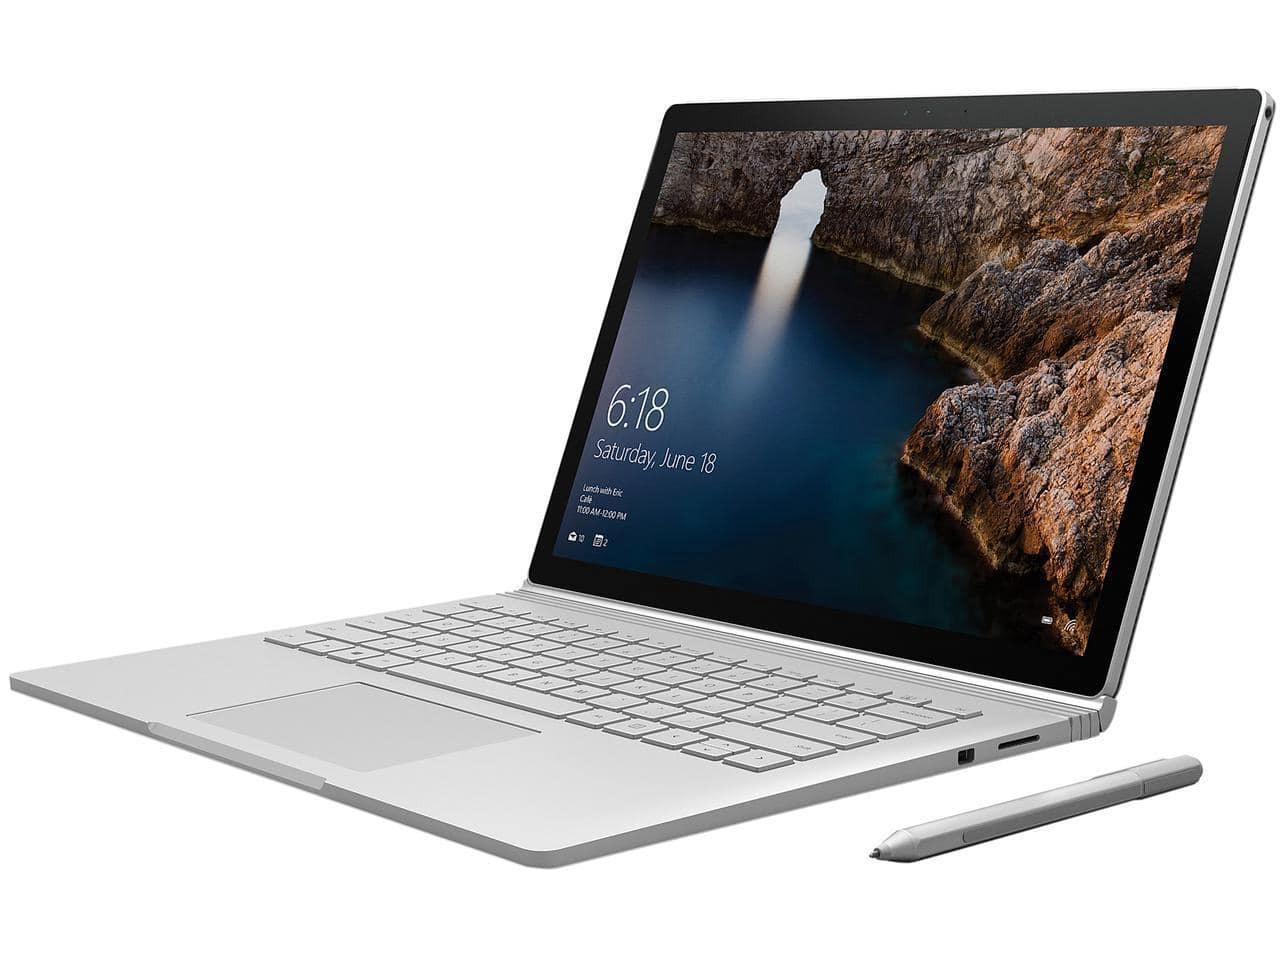 Microsoft Surface i5 6th Gen 6300U 2.40 GHz 8 GB Memory 256 GB SSD NVIDIA GeForce 13.5 Touchscreen Win 10 Pro + Surface Pen $899